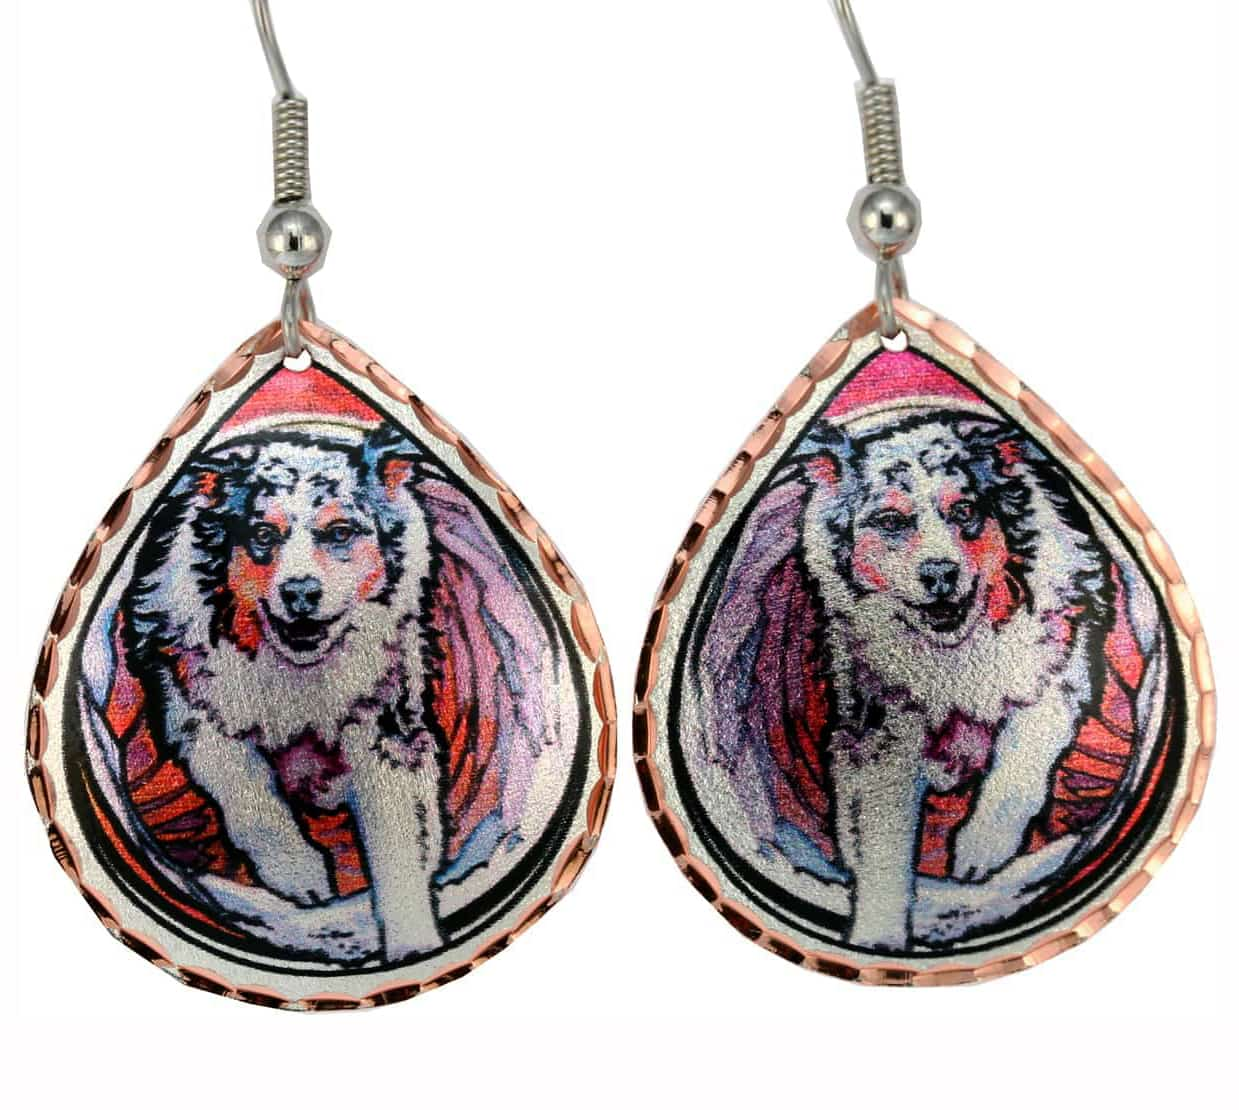 Dog jewelry, Australian shepherd earrings created in watercolor artwork by Lynn Bean